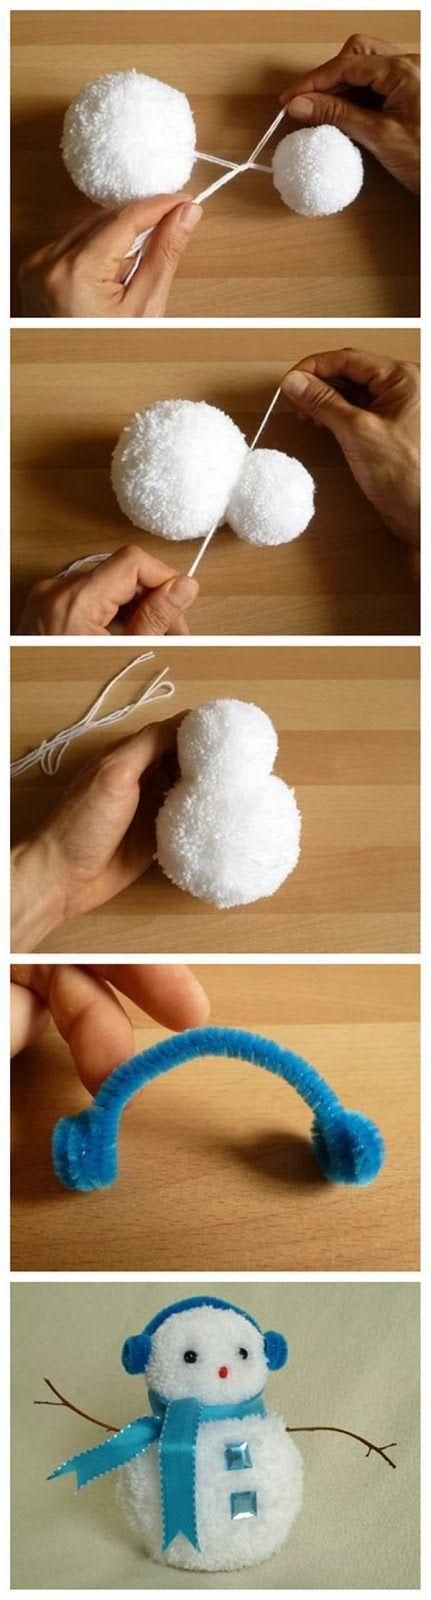 Simple Gift You Can Done in 5 minutes for Kids. #DIY, #Gift.